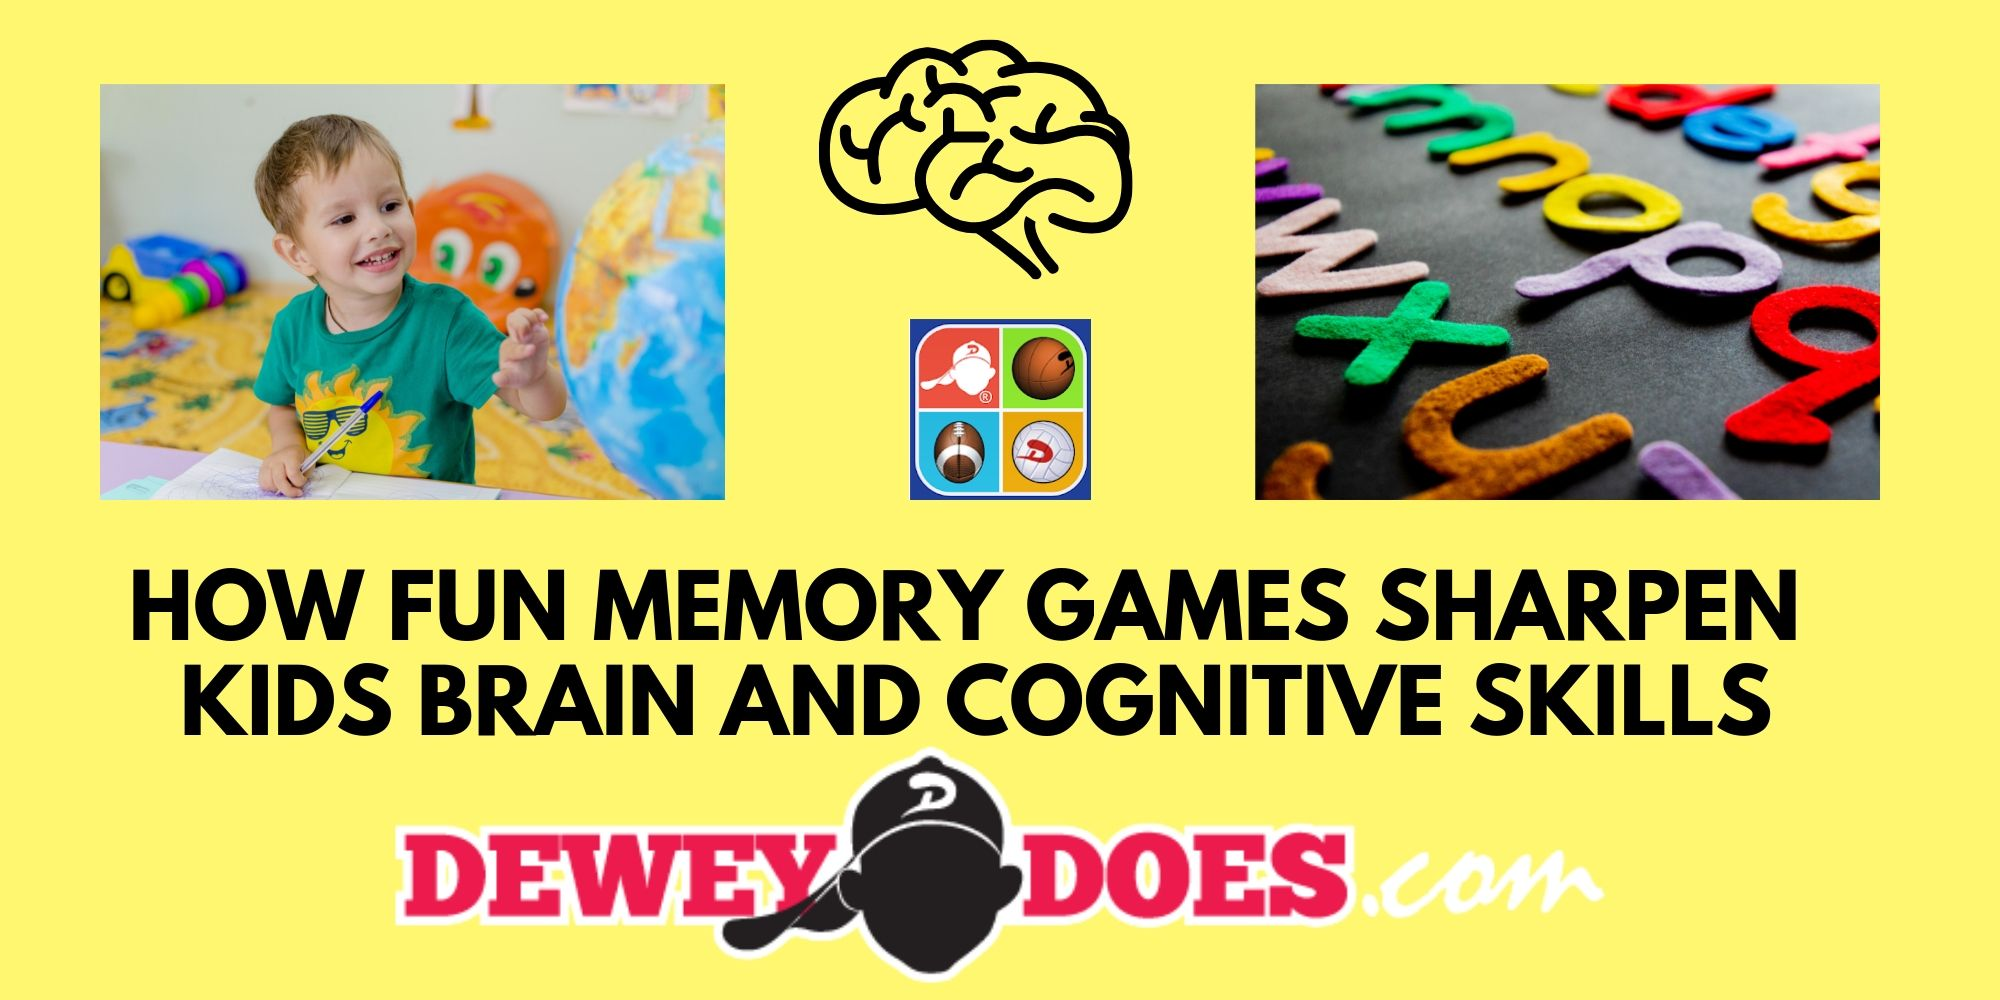 How Fun Memory Games Sharpen Kids Brain And Cognitive Skills